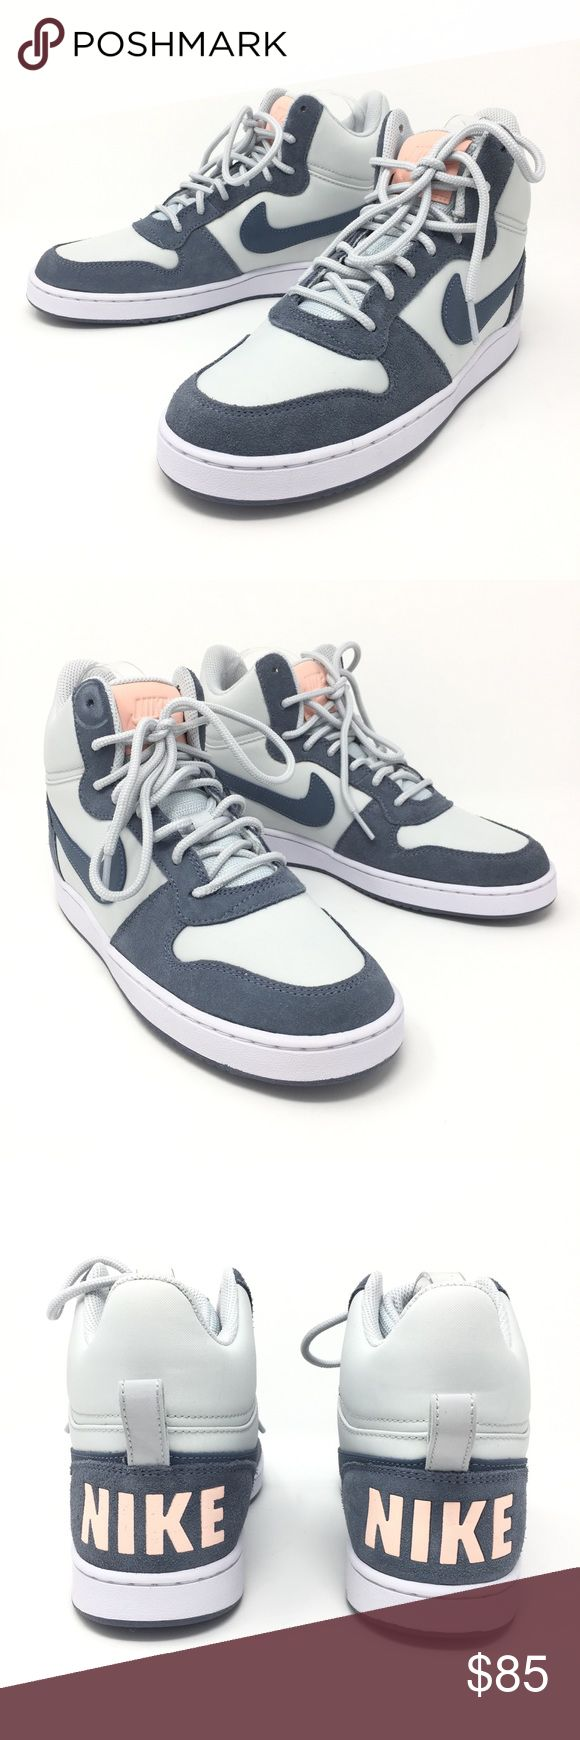 Nike Sneakers Court Borough Mid gray blue Sz 8.5 Nike Sneakers Court Borough Mid Premium Trainers Ladies Gray Blue Shoes Sz 8.5   Size: 8.5 women's  Color: Gray Blue  Style Name/Number: Court Mid Borough   Brand New without original box. Nike Shoes Sneakers